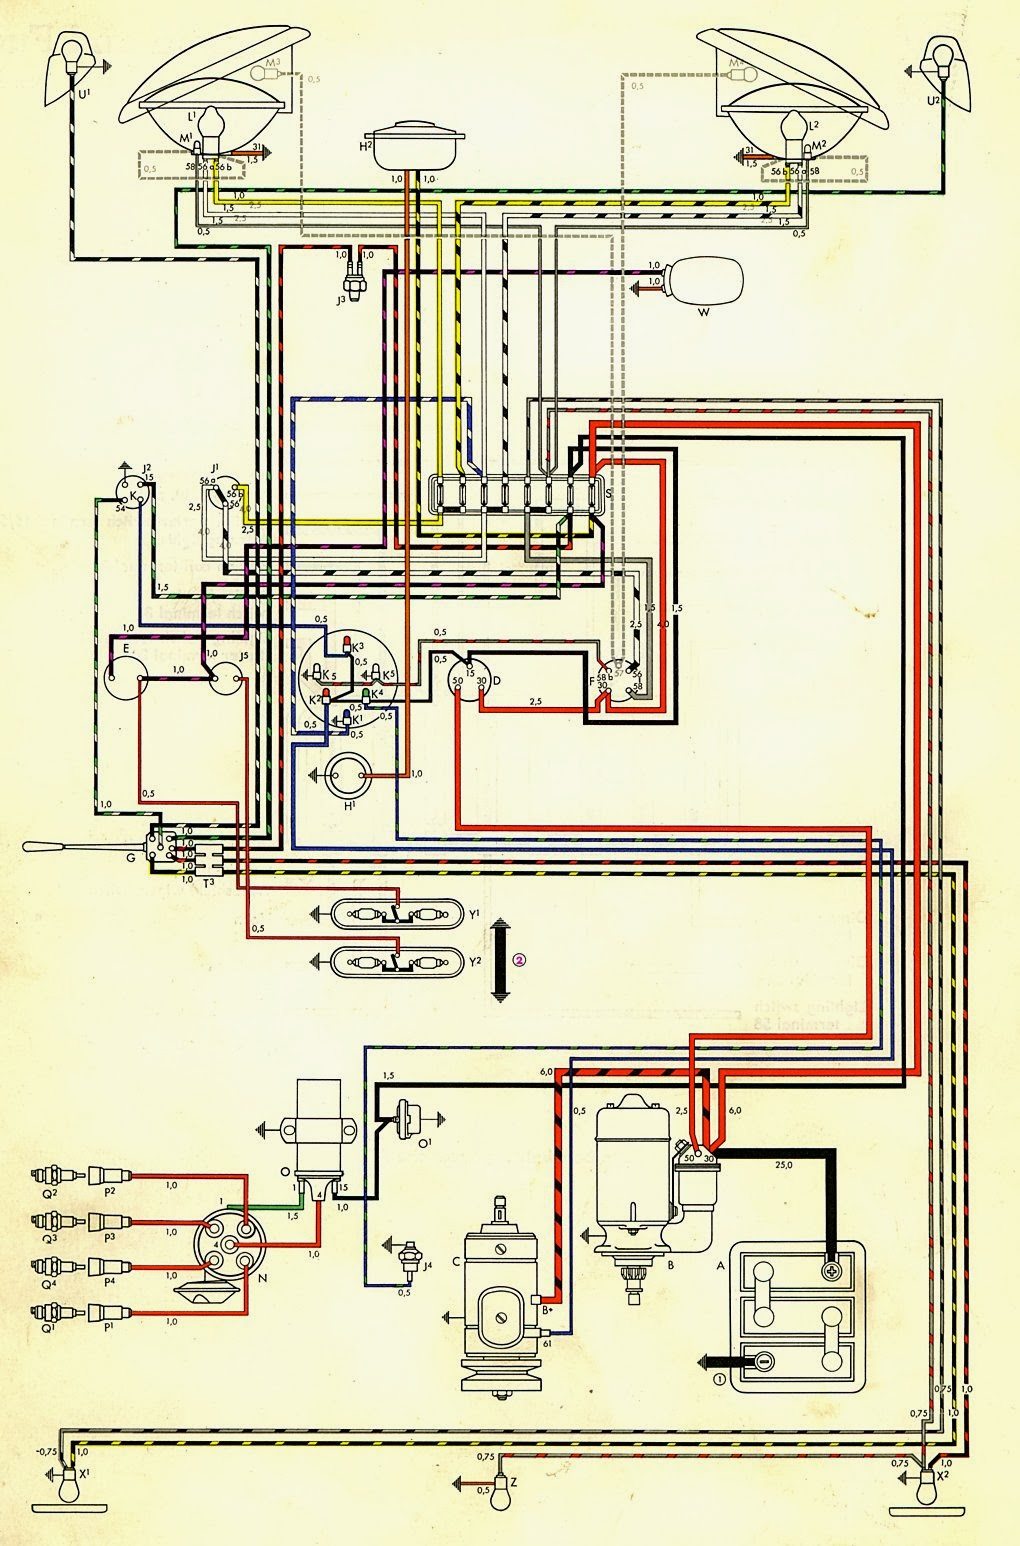 medium resolution of 1969 vw type 3 wiring diagram vw r32 wiring diagram wiring vw wiring color code vw wiring colour codes